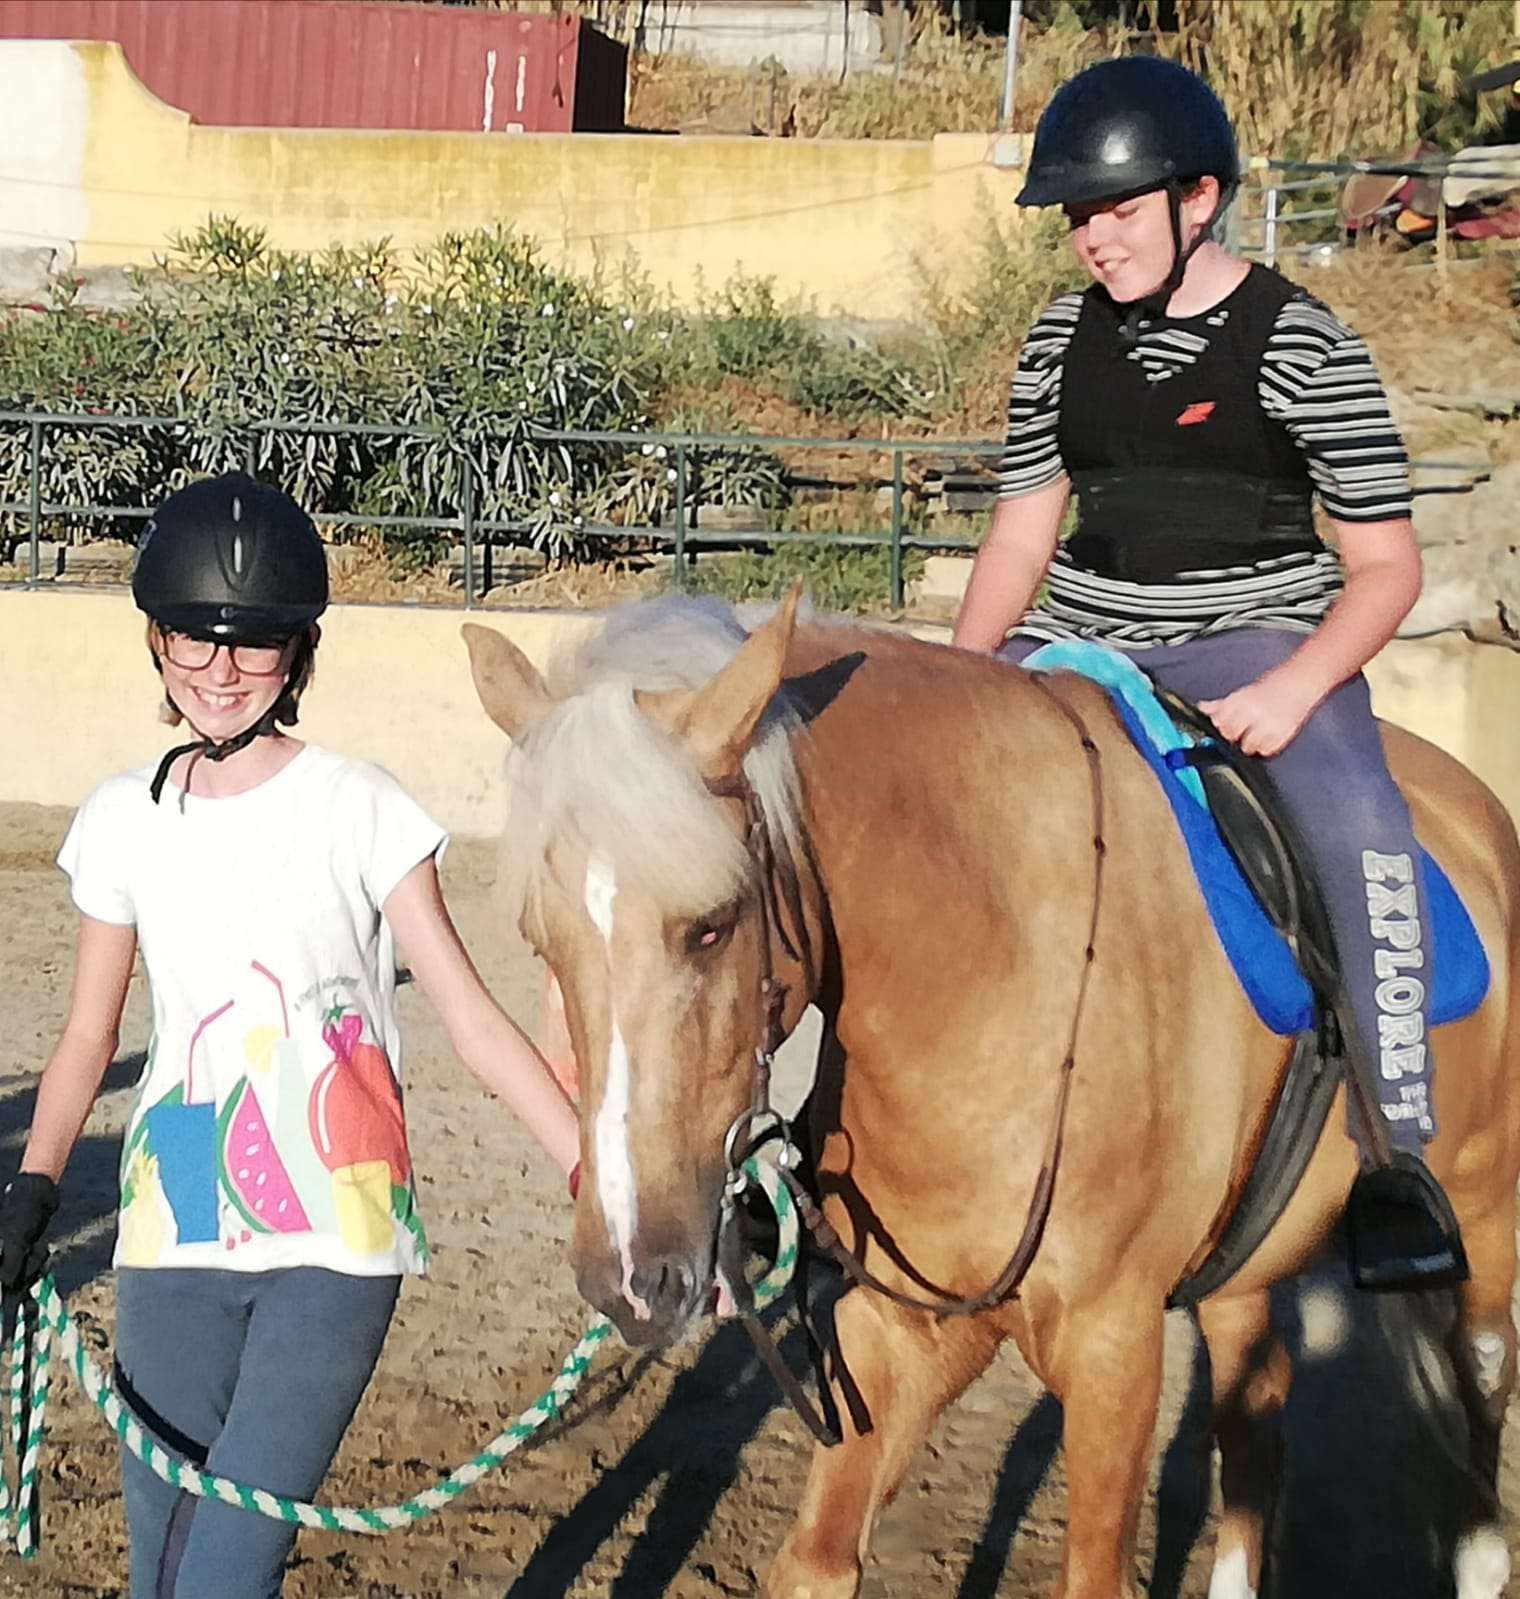 Birthday party fun at private pony party Ranch Siesta Los Rubios, Estepona